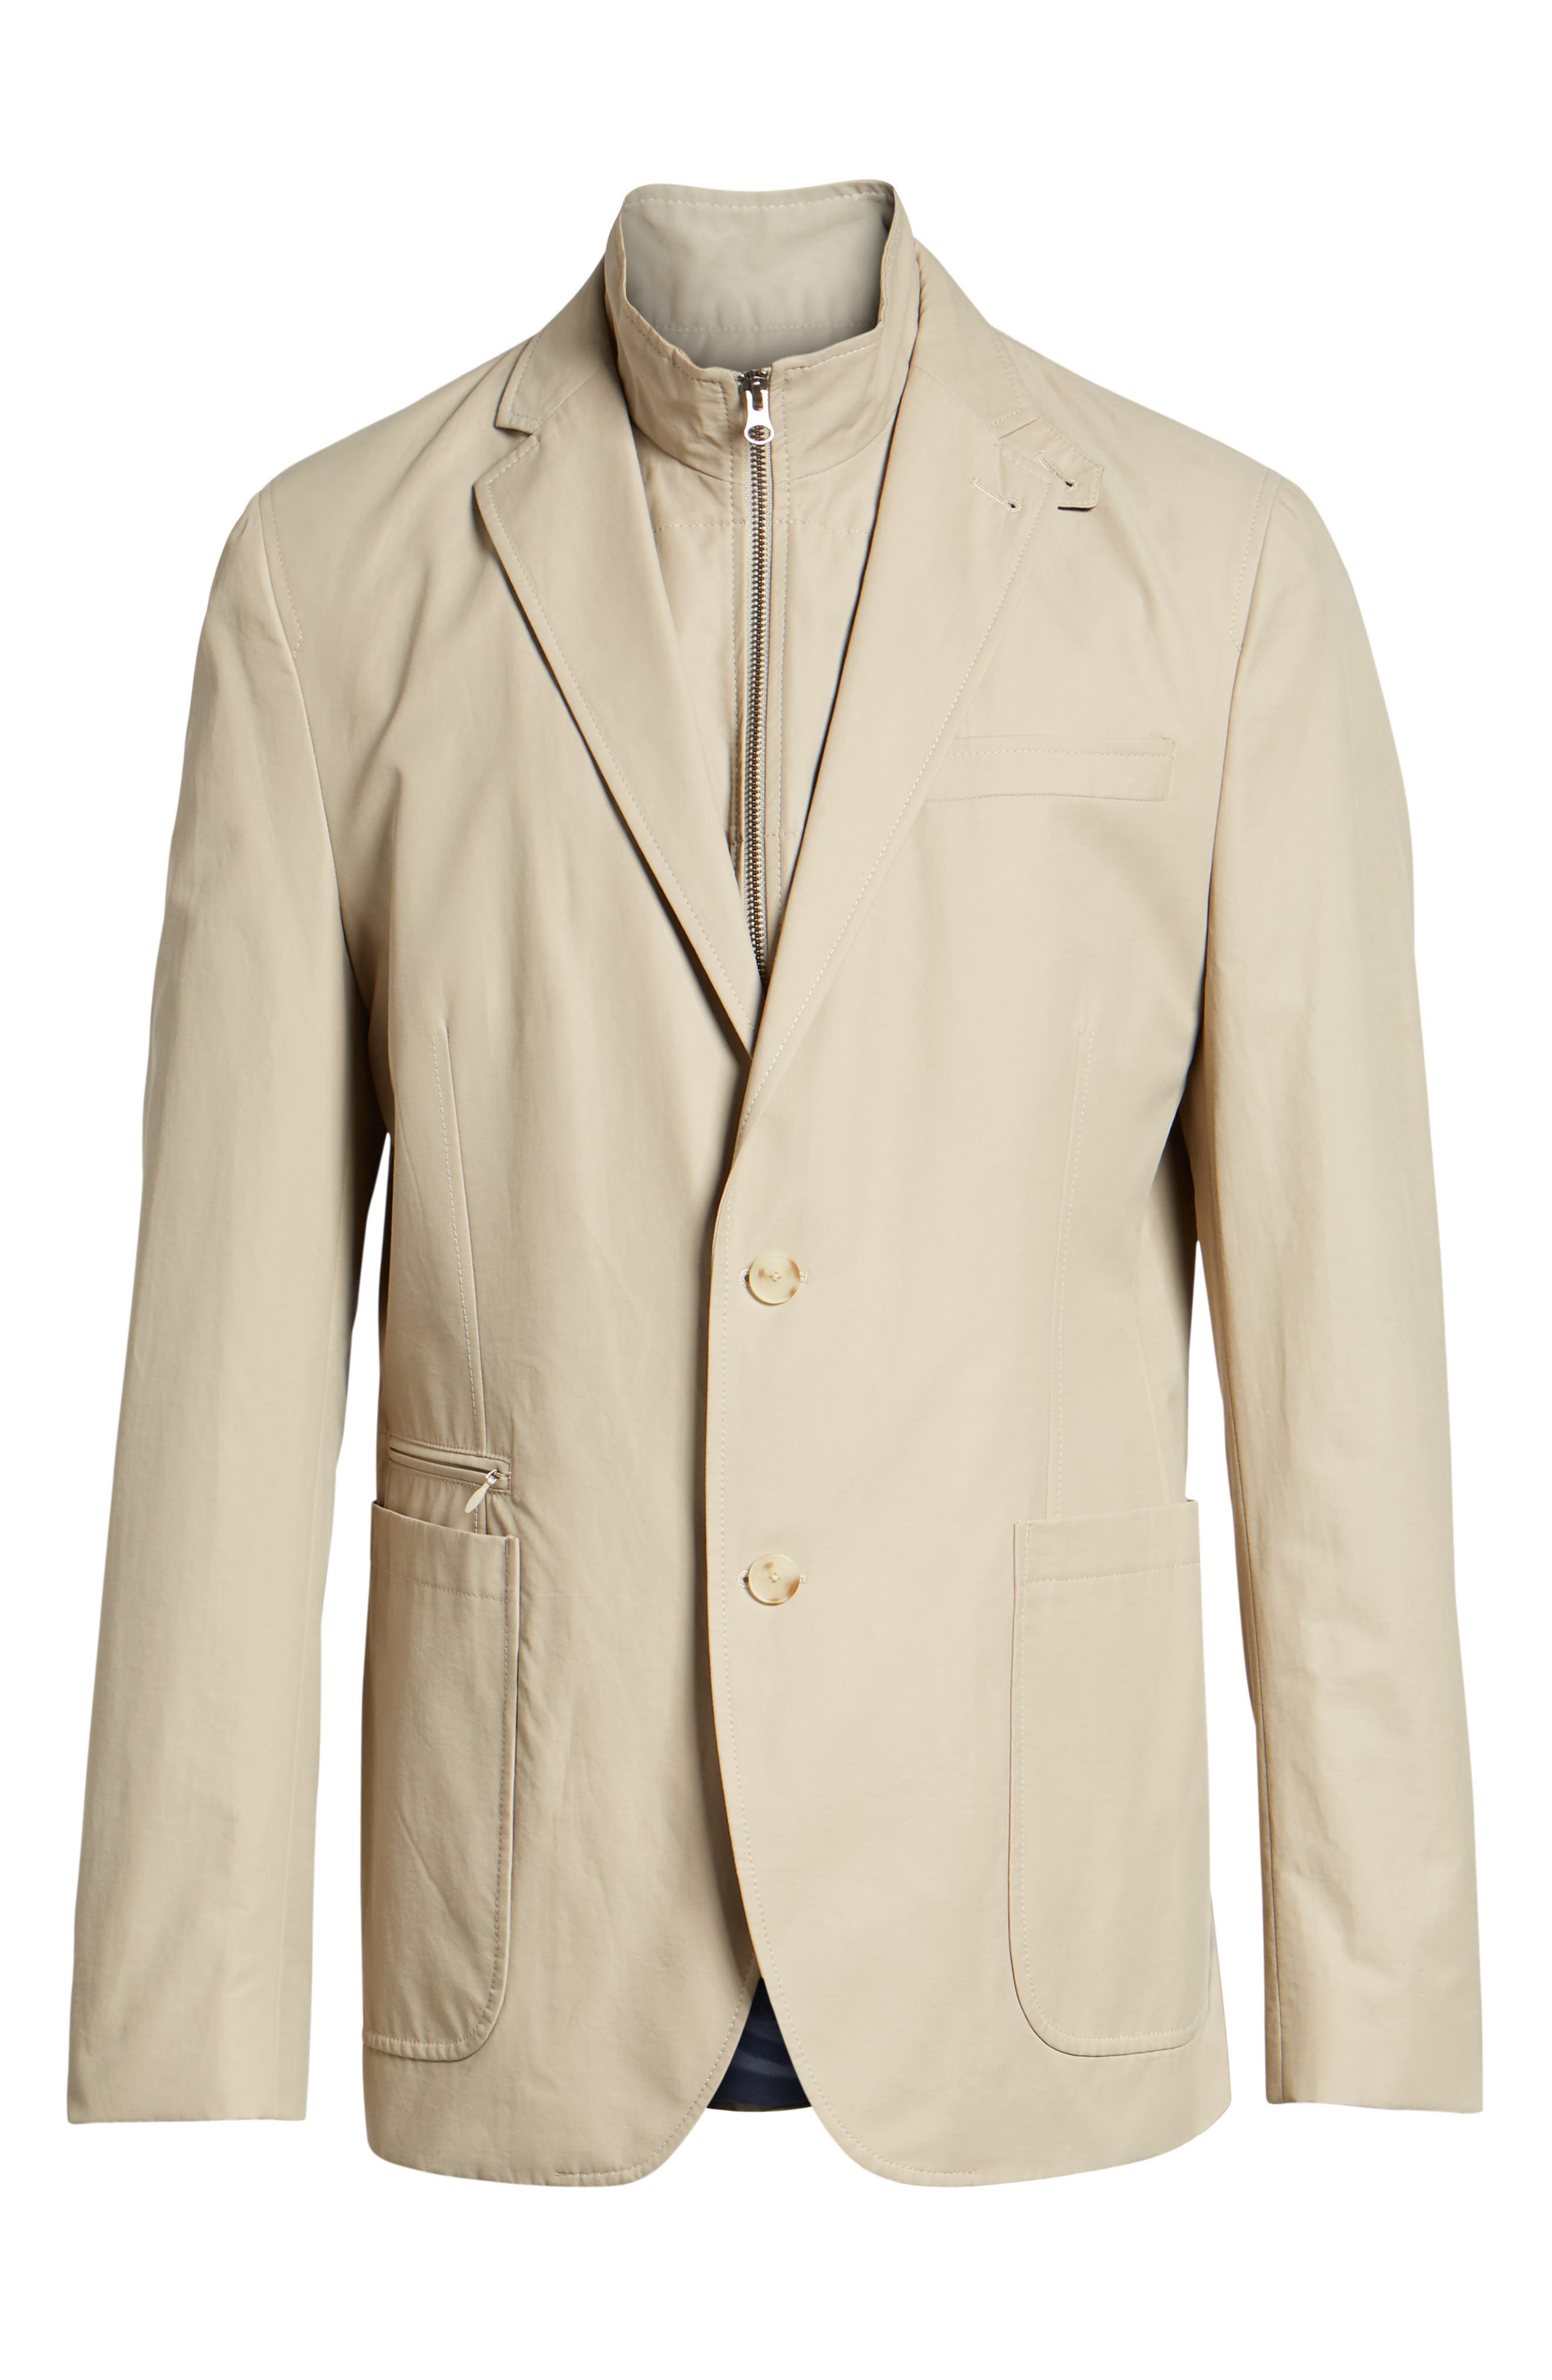 Jones AIM Classic Fit Hybrid Blazer,                             Alternate thumbnail 5, color,                             Tan